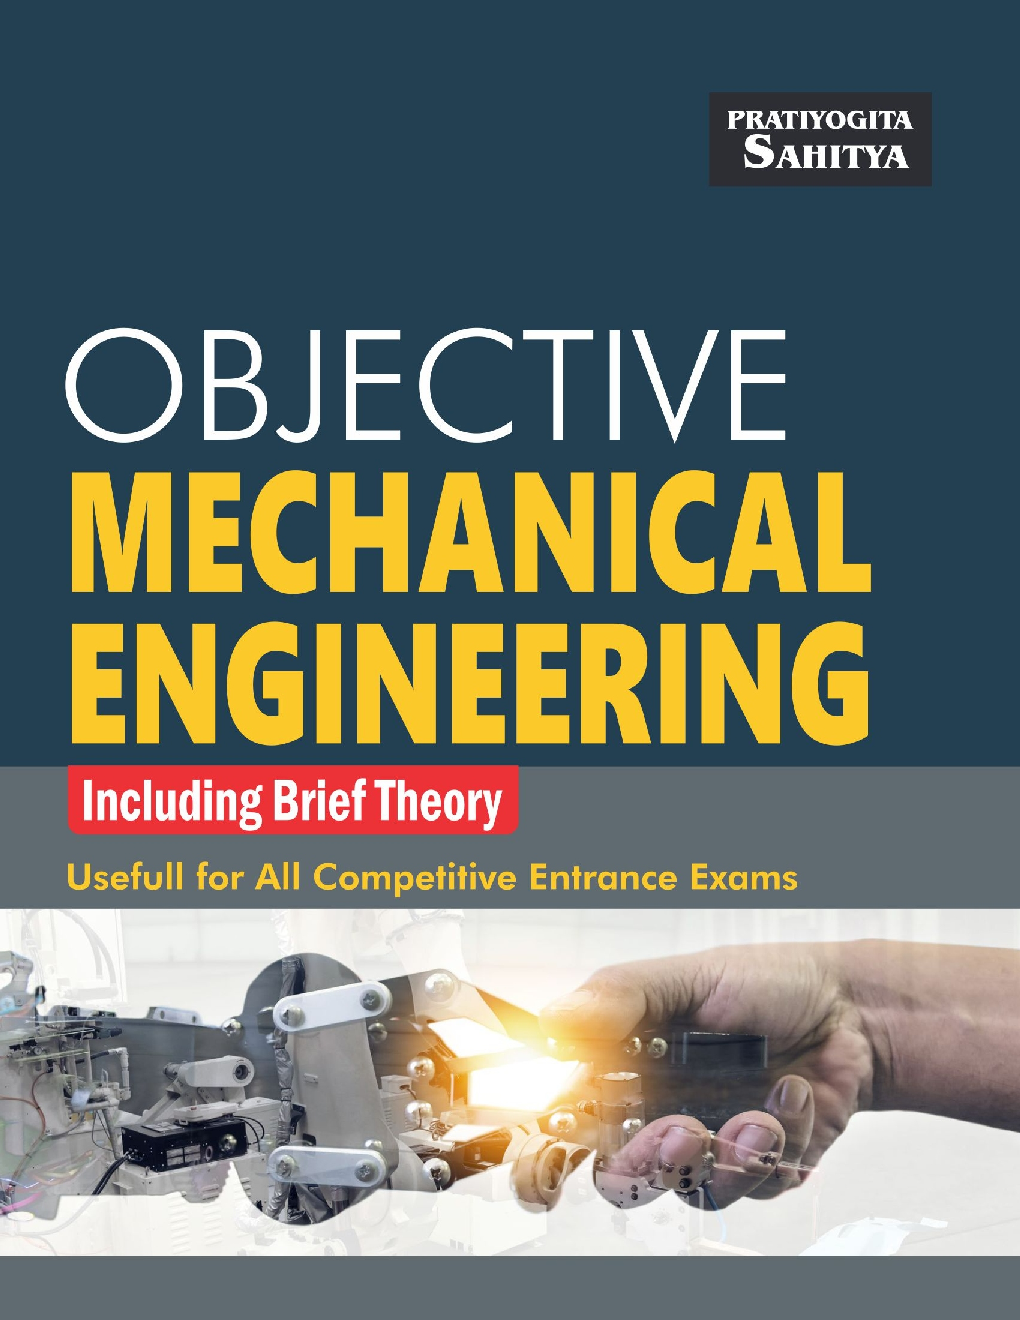 Objective Mechanical Engineering - Page 1